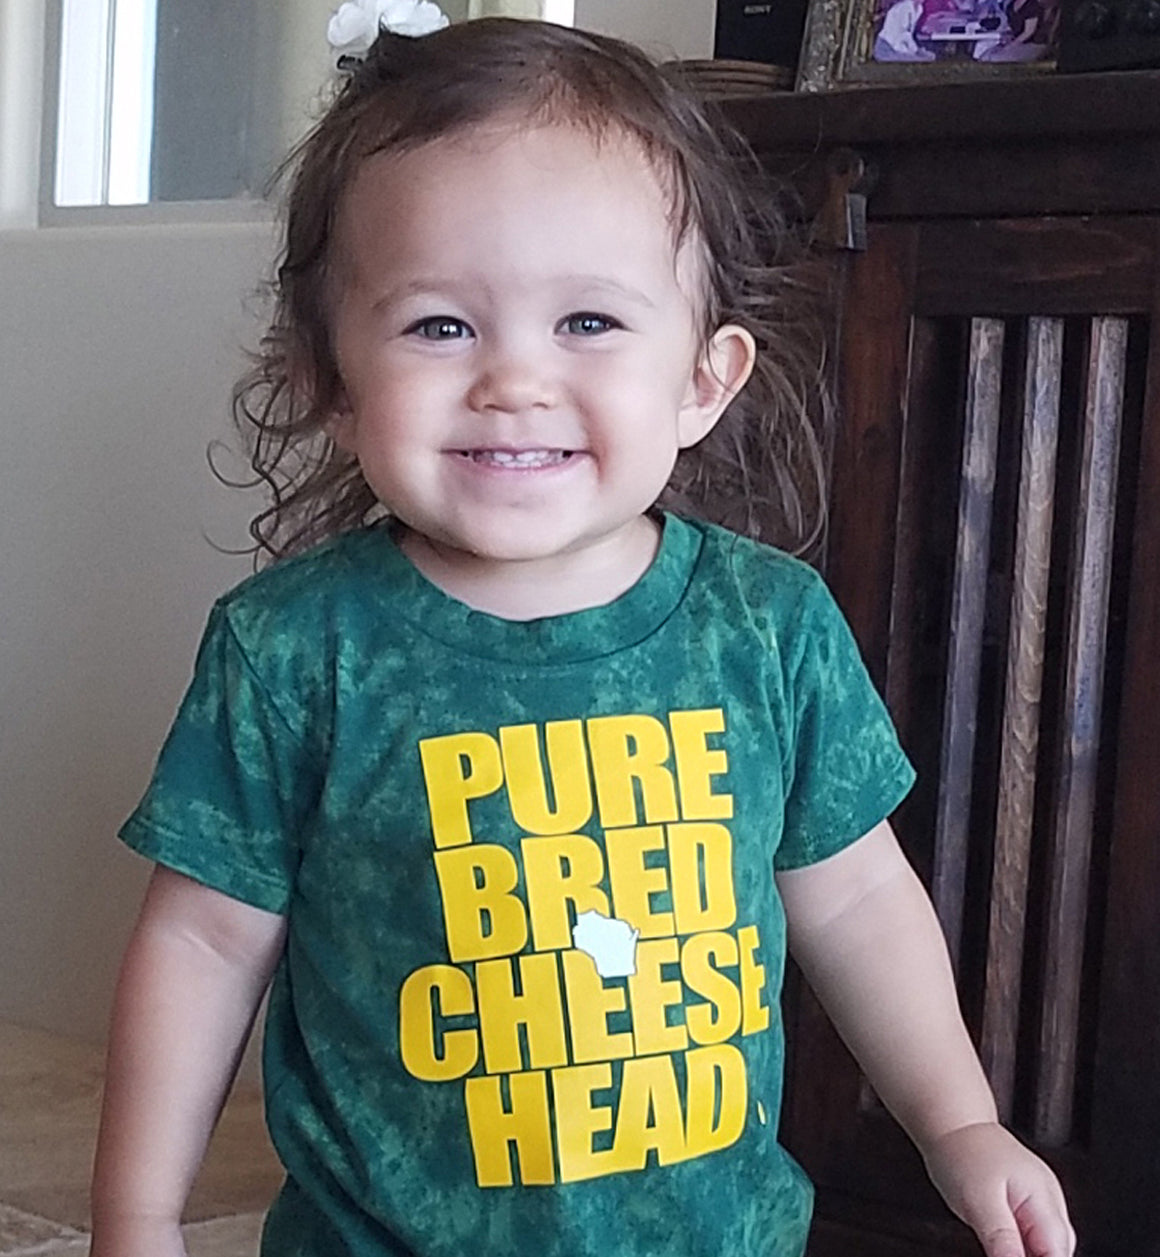 baby girl wearing a cheesehead shirt